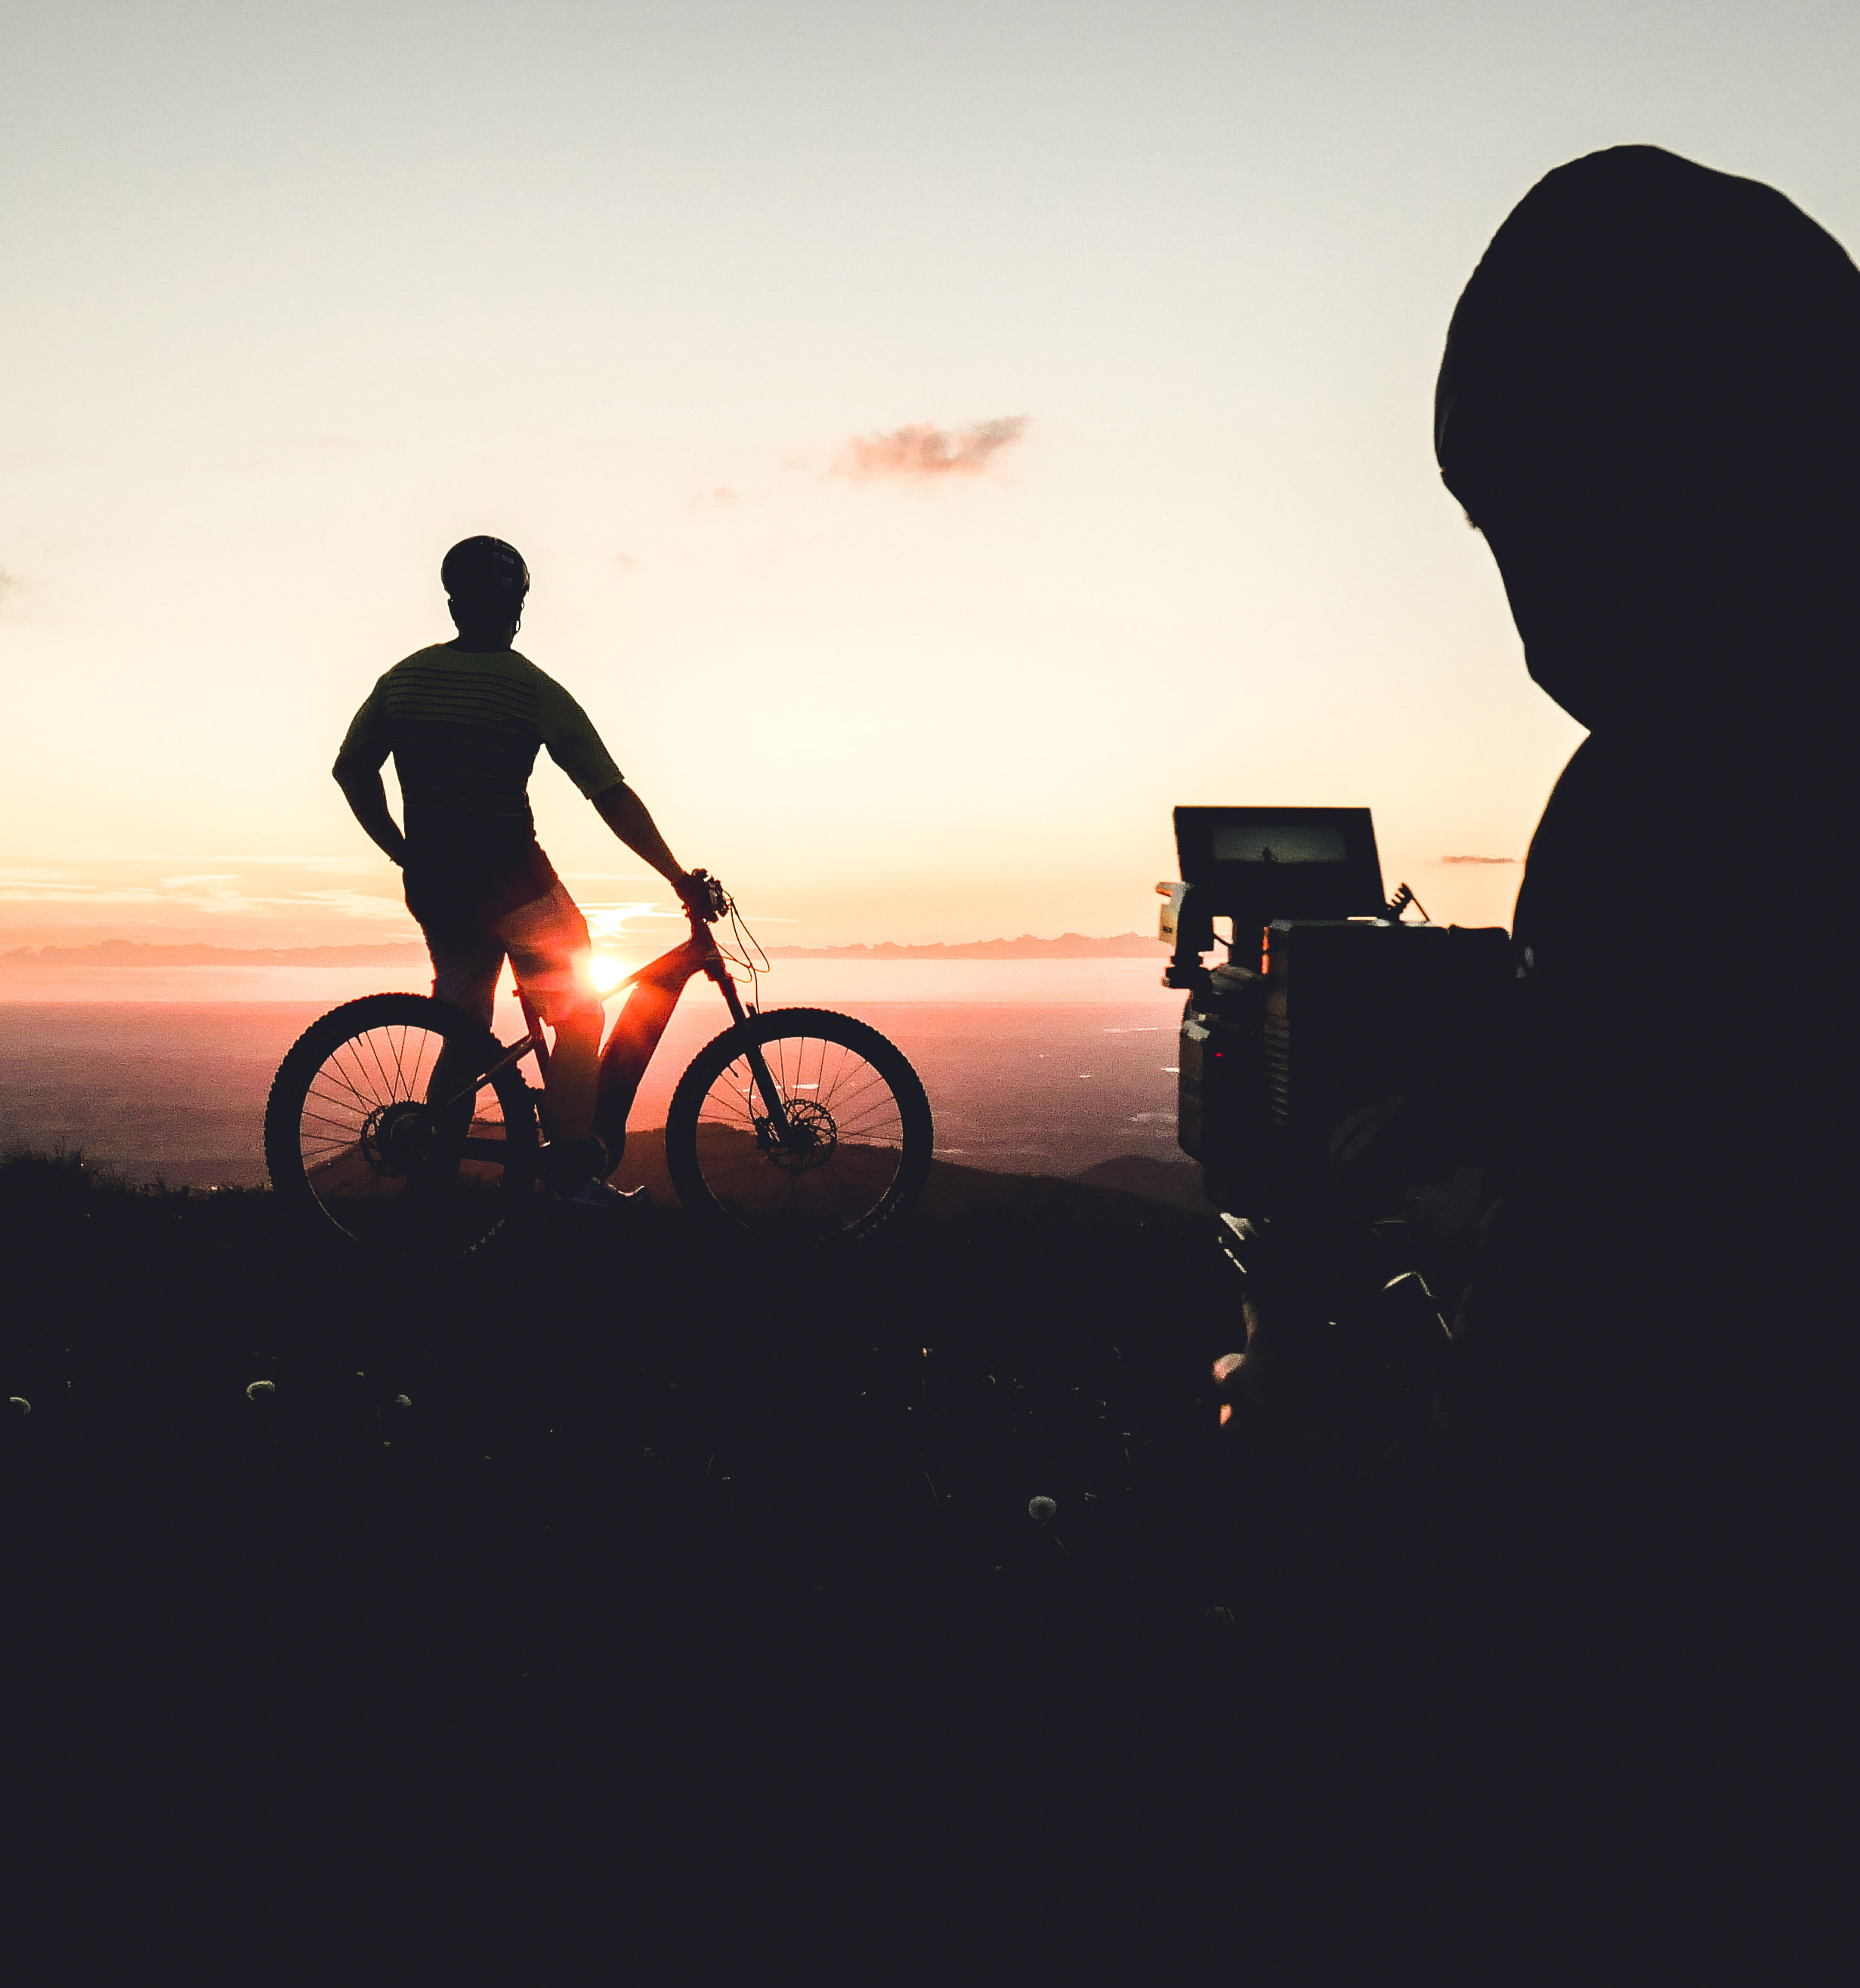 IN the alps - shooting for Giant Bicycles